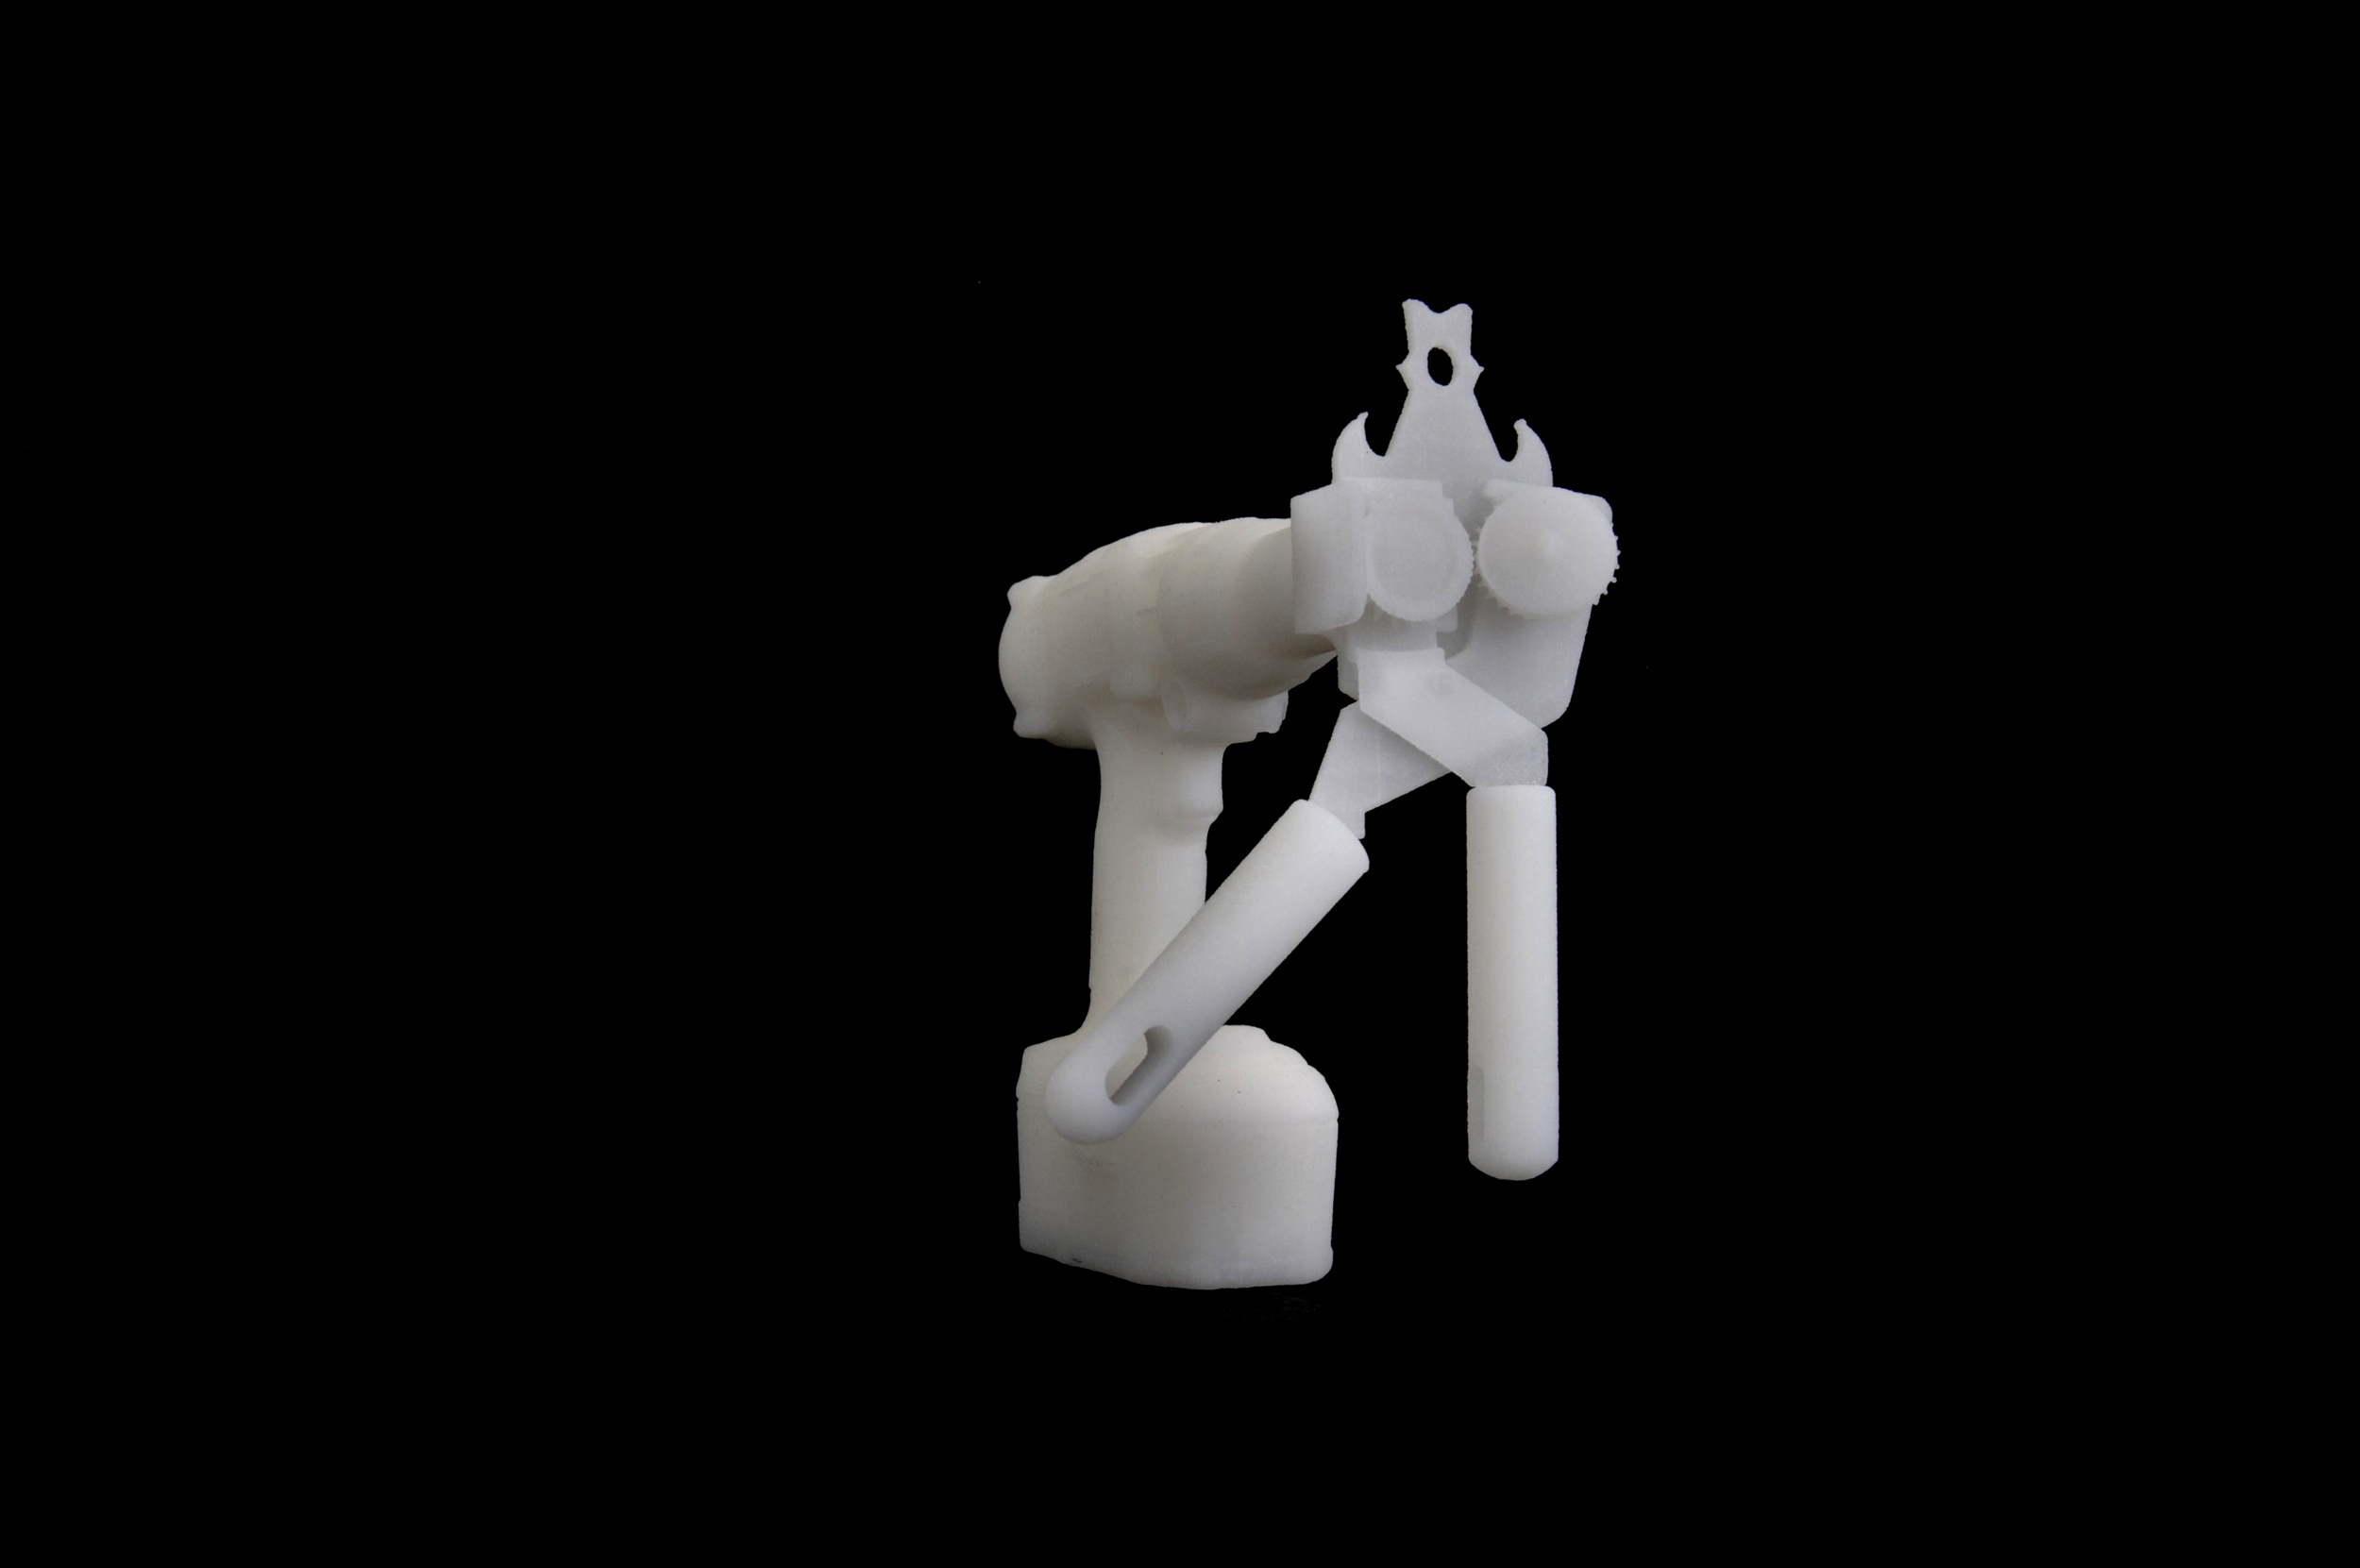 Formal metonymy, 2017, A projection of an animated 3D printed object - a can opener connected to a battery drill, 12 x 6 x 11 cm, Courtesy of the artist and Gypsum Gallery